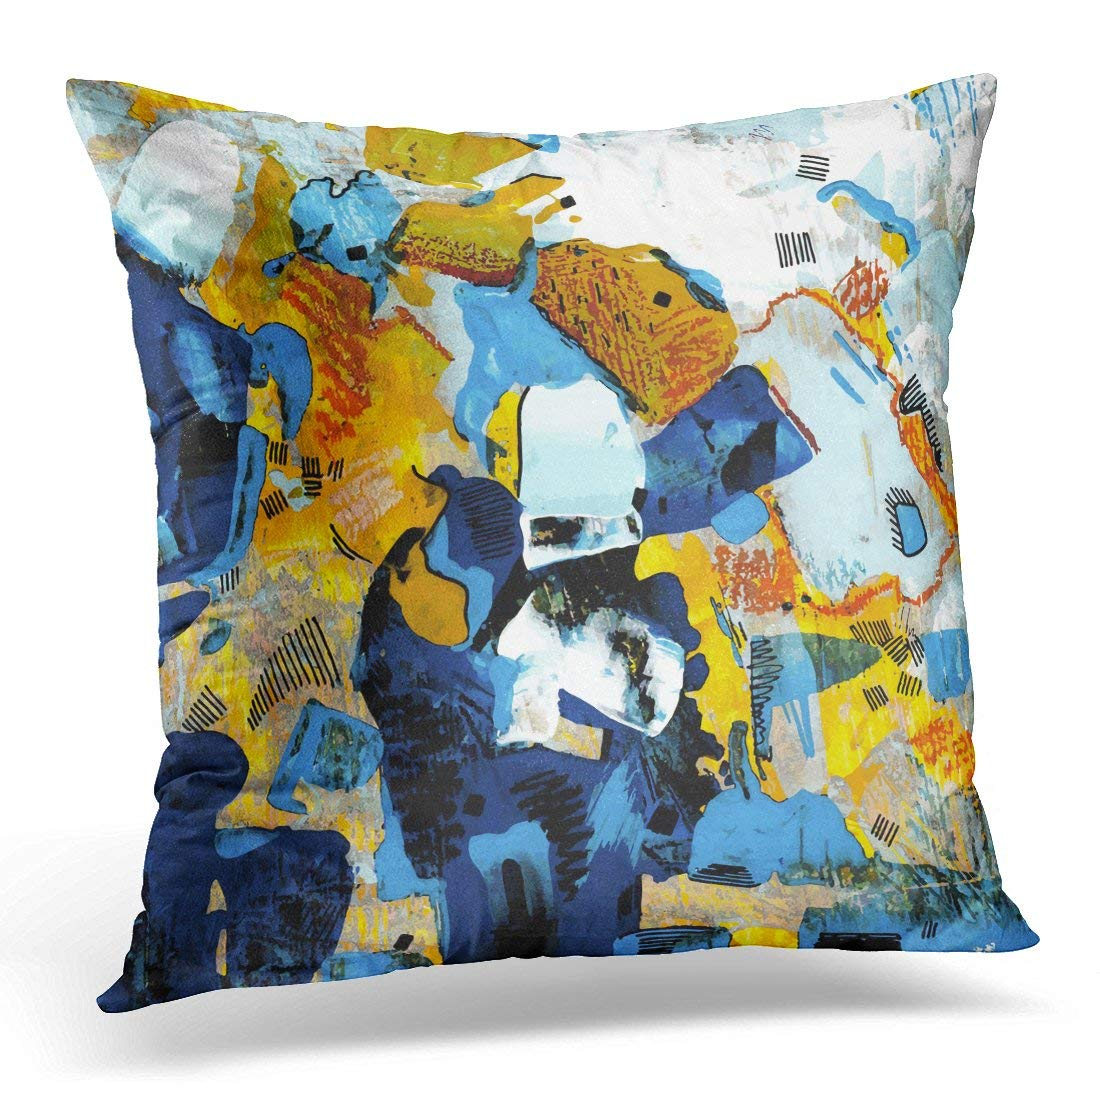 arhome colorful oil painting abstract grunge graphic watercolor pillow case pillow cover 20x20 inch